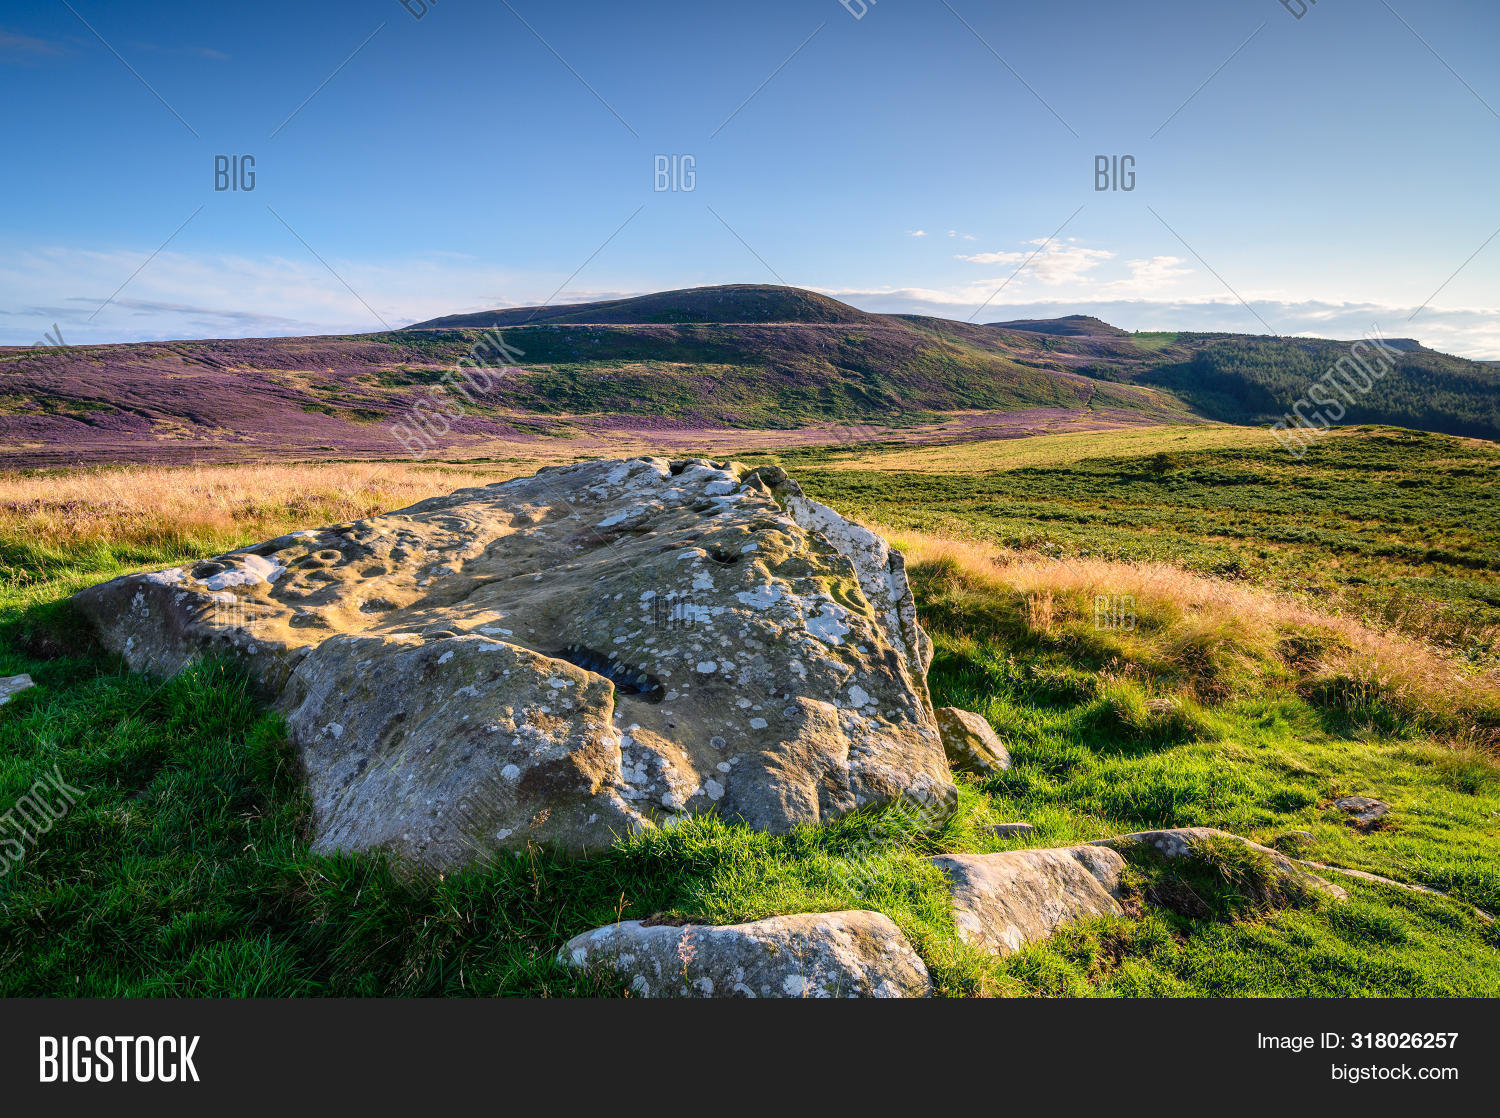 Lordenshaws Prehistoric Rock Mirrors Simonside Hills Ridge, The Hillfort Is Located Near Rothbury In